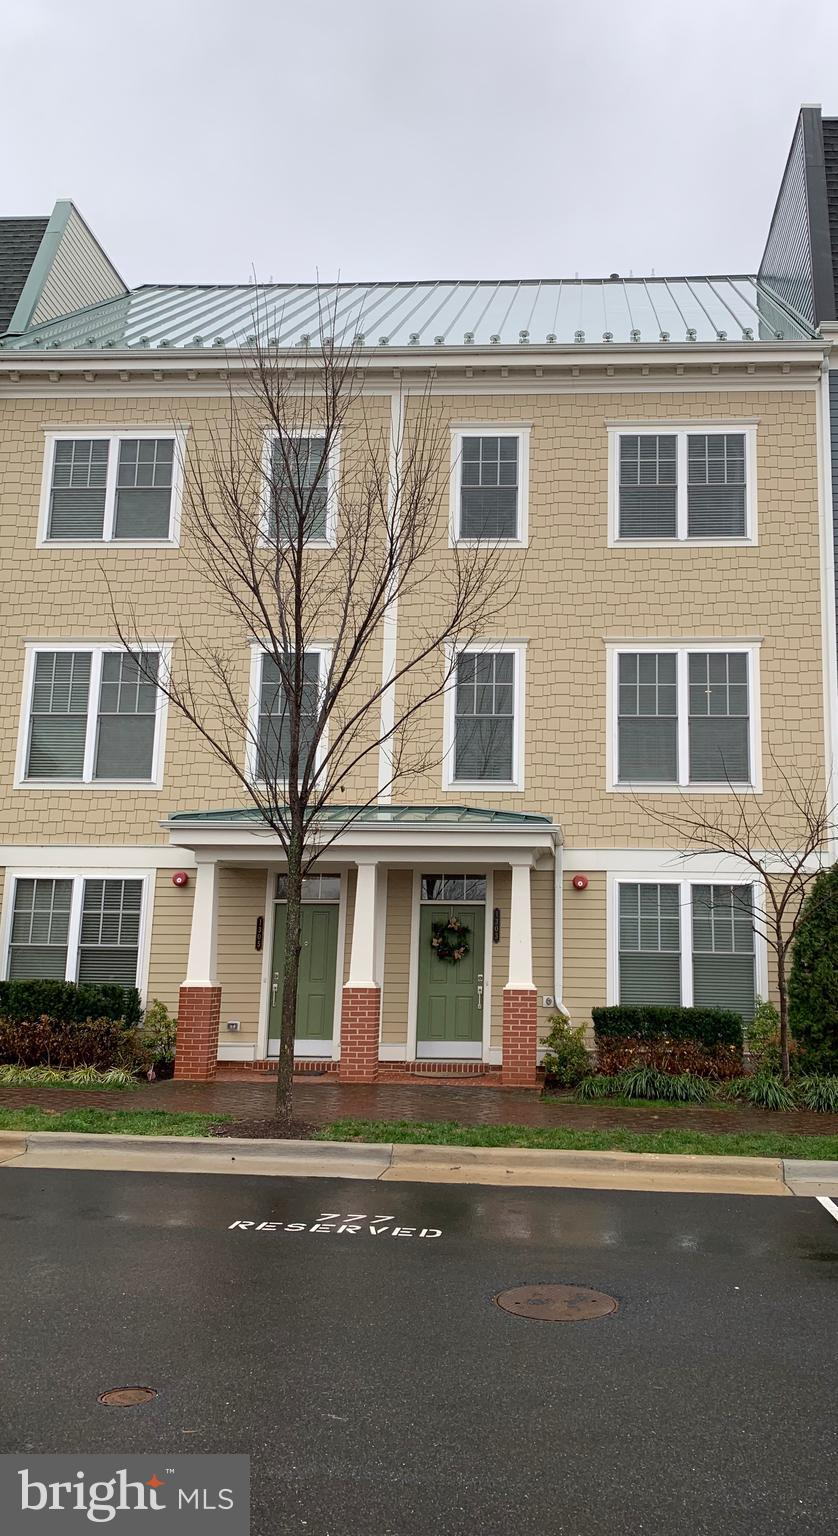 Meticulously maintained modern townhouse close to everything! Featuring hardwood floors in living areas with carpet in bedrooms. Open floor plan makes it feel even larger.  Hard to find 2-car garage in great location. Less than 1/2 mile to Braddock metro station, soccer fields, playground, and George Washington School. Feet from Potomac Yard Trail. Come out and see this commuter's dream!